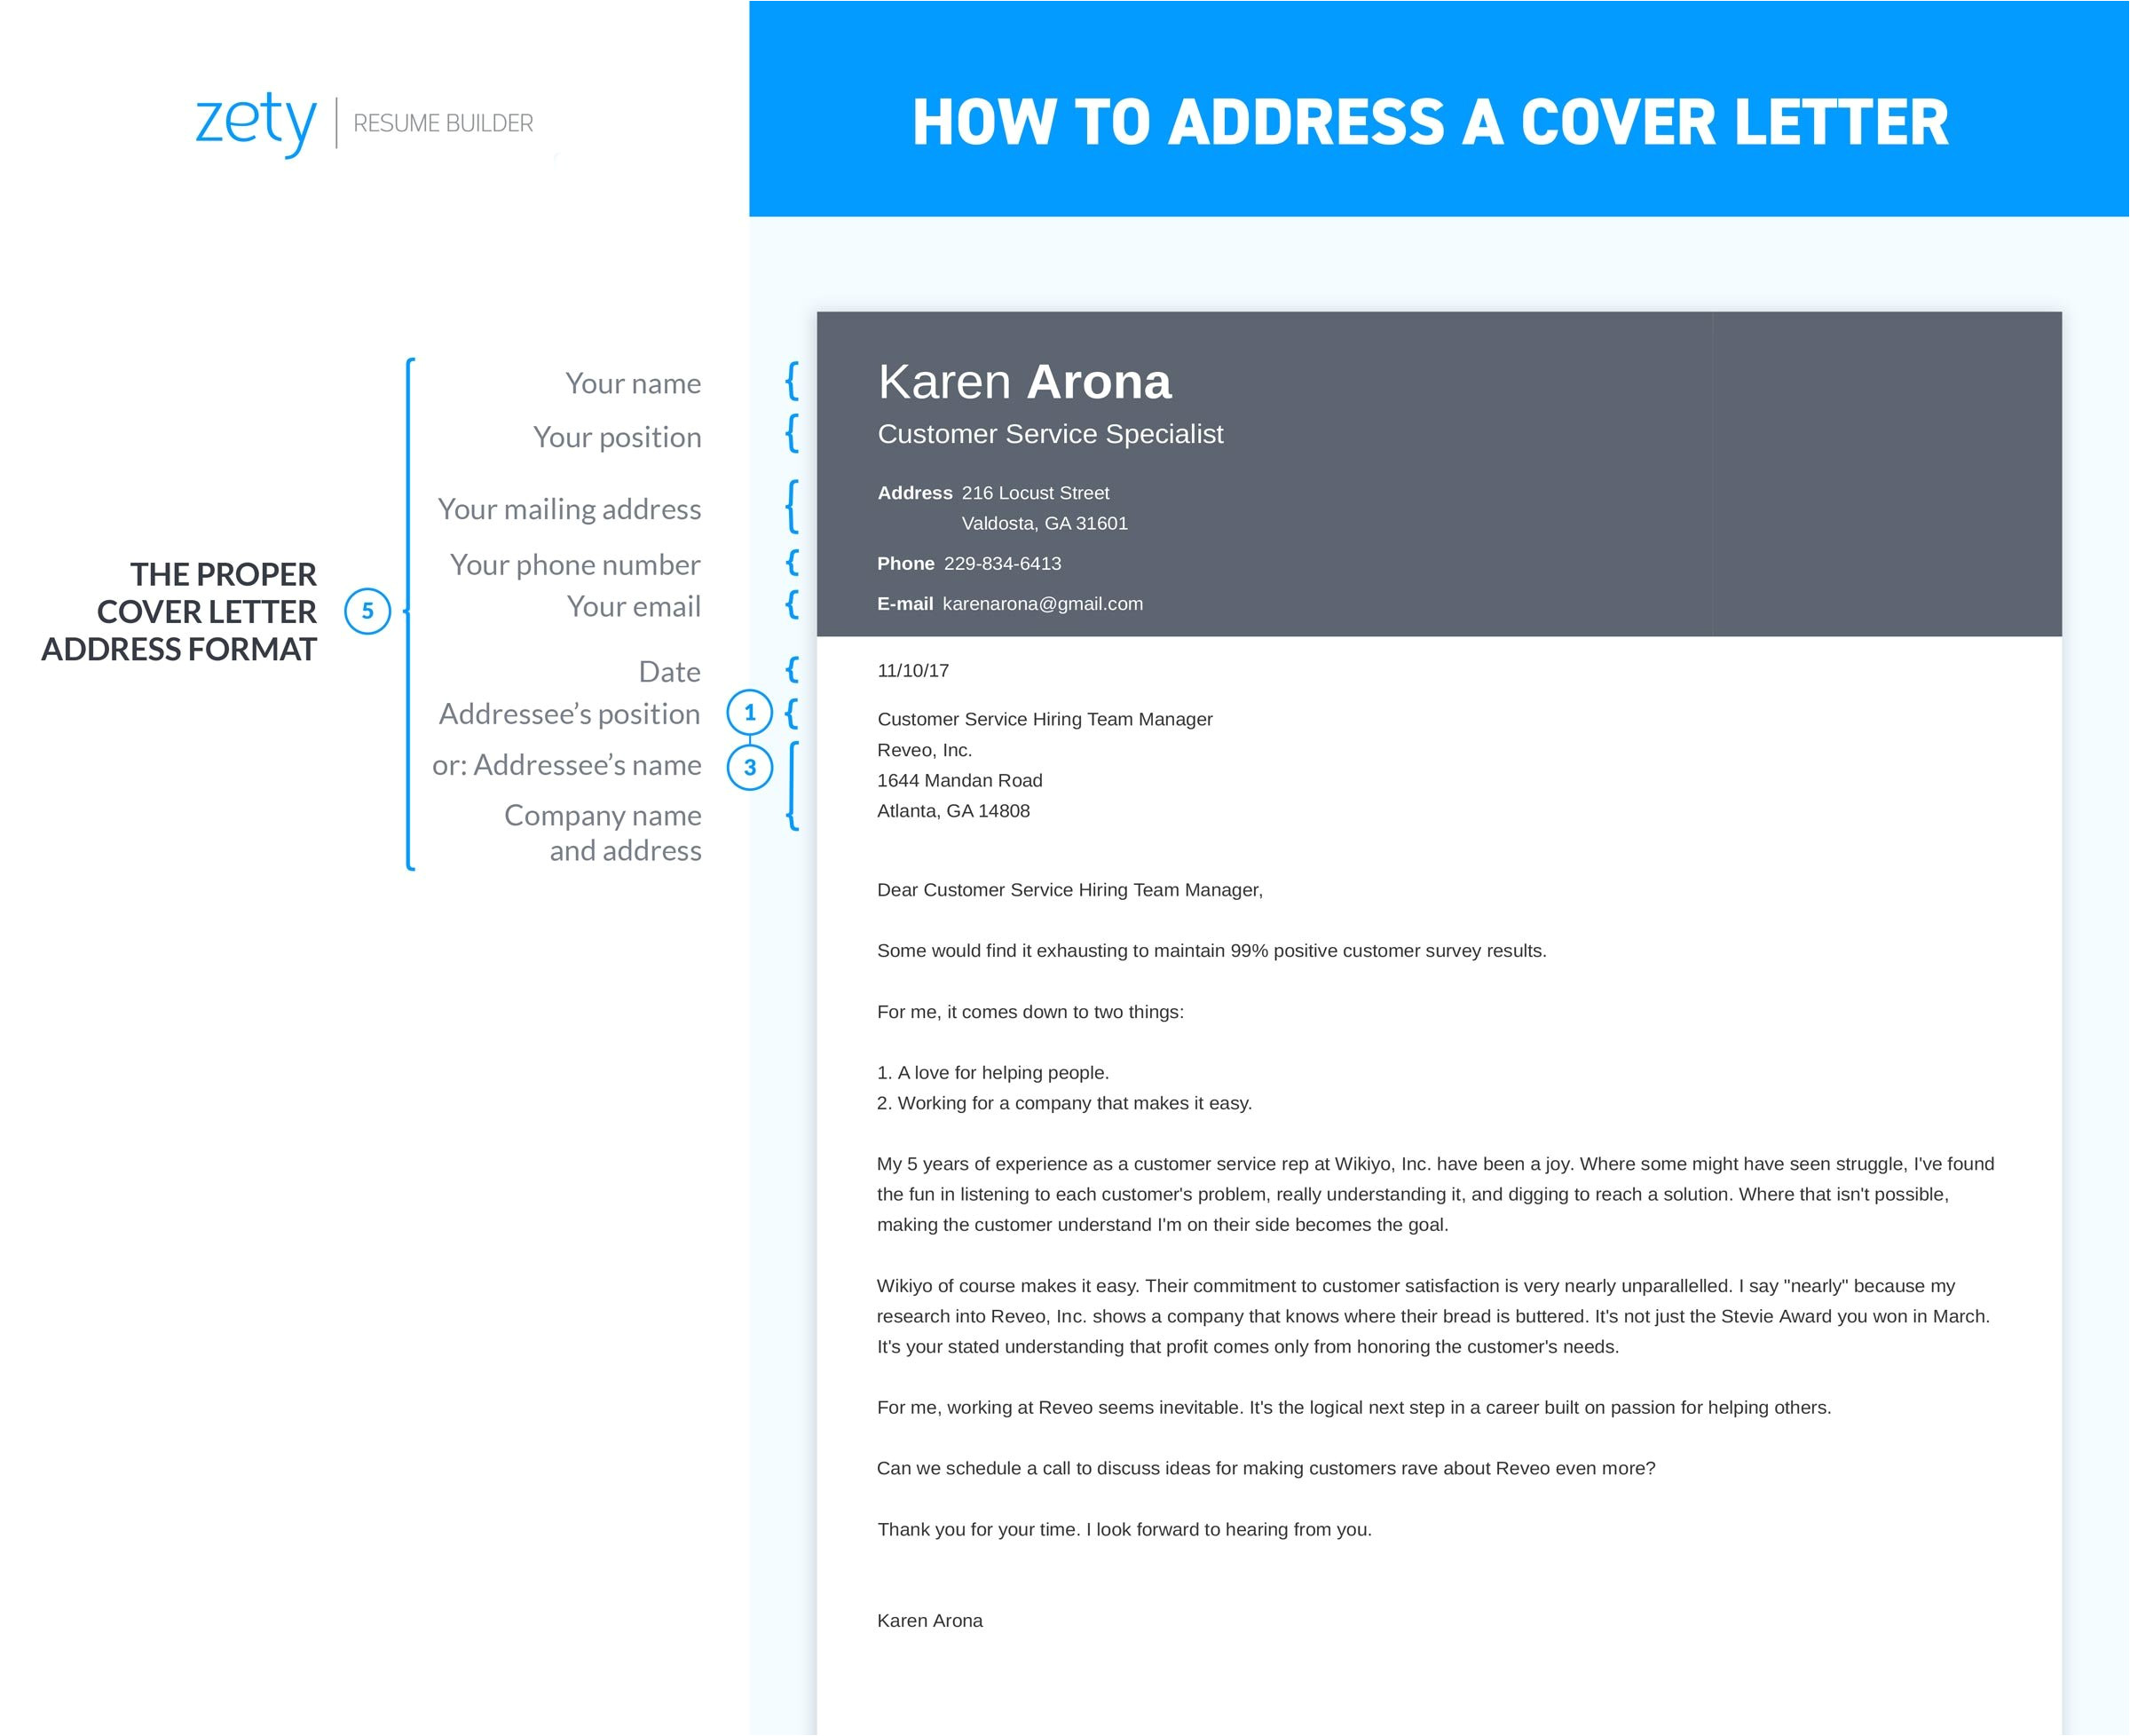 how to address a cover letter